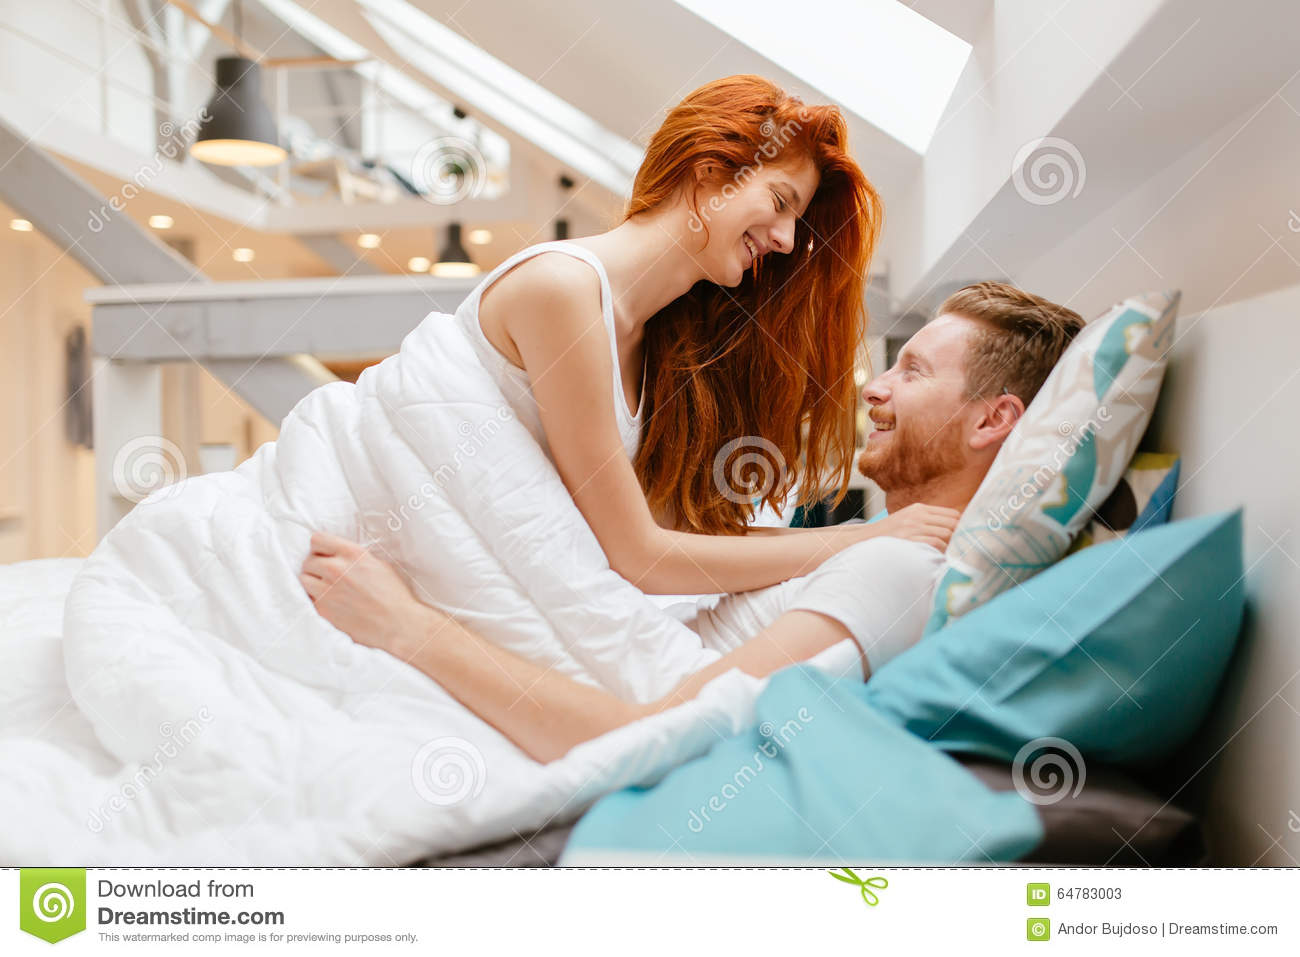 Royalty Free Stock Photo  Download Beautiful Couple Romance In Bed. Beautiful Couple Romance In Bed Stock Photo   Image  64783003